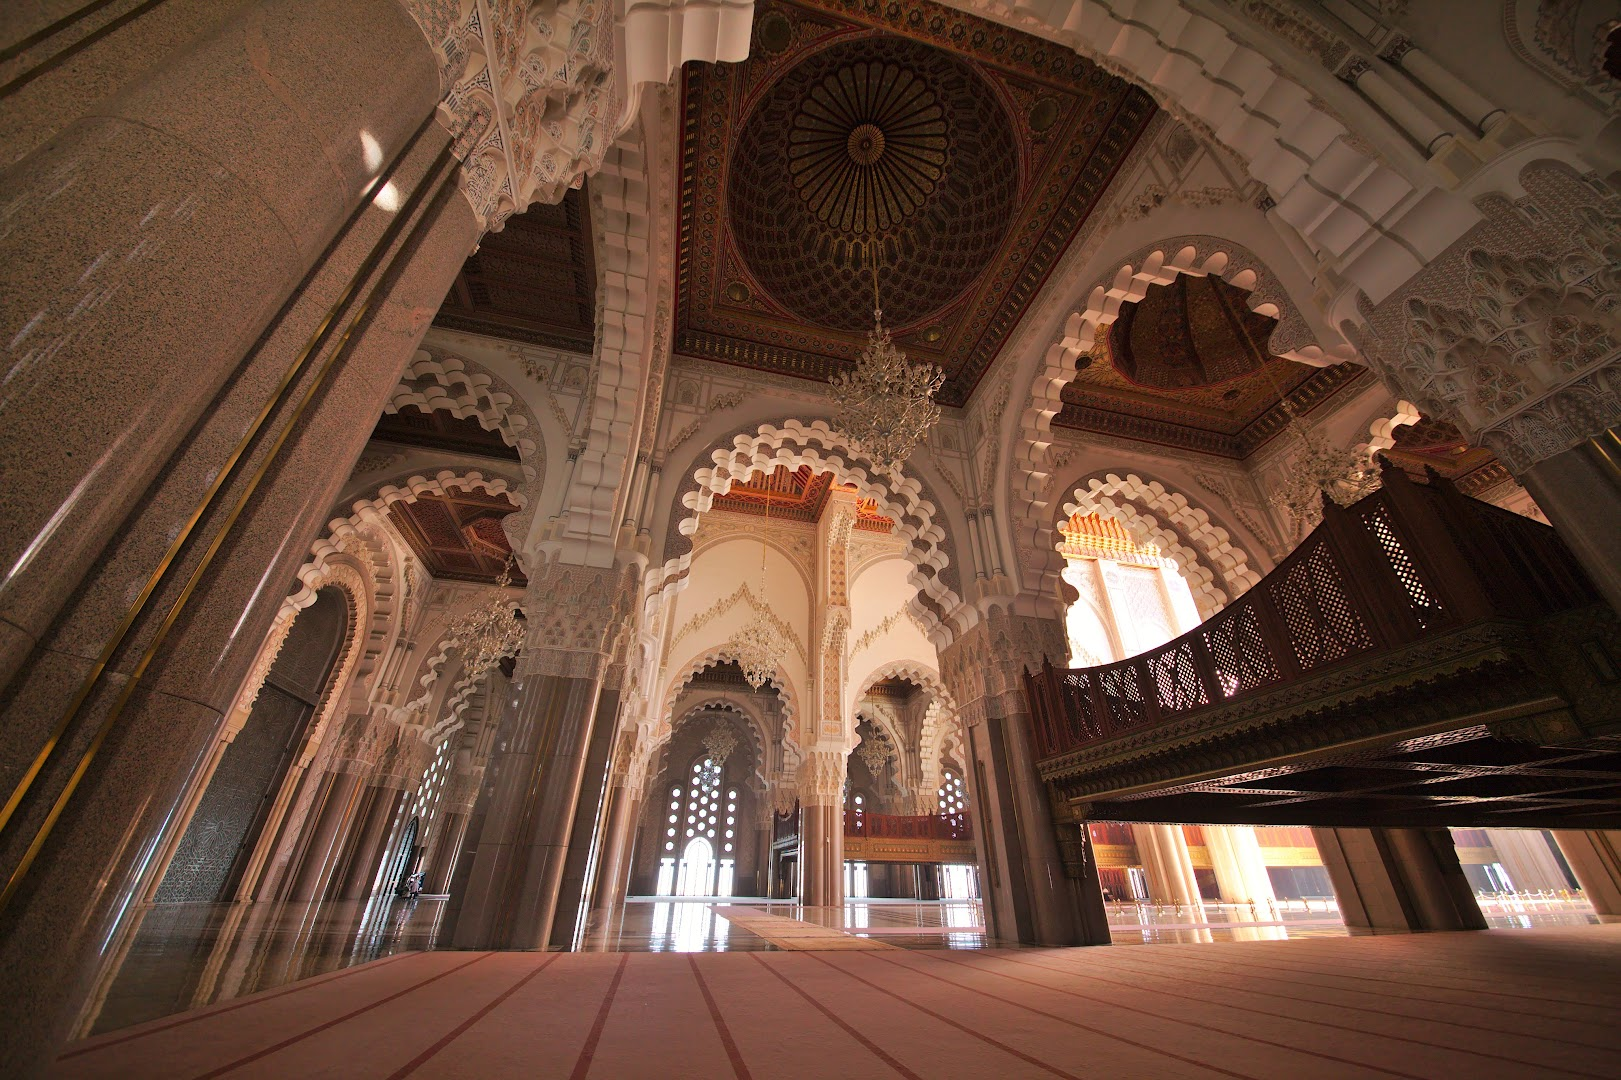 You can get the tour of the mosque when it's not the prayer time